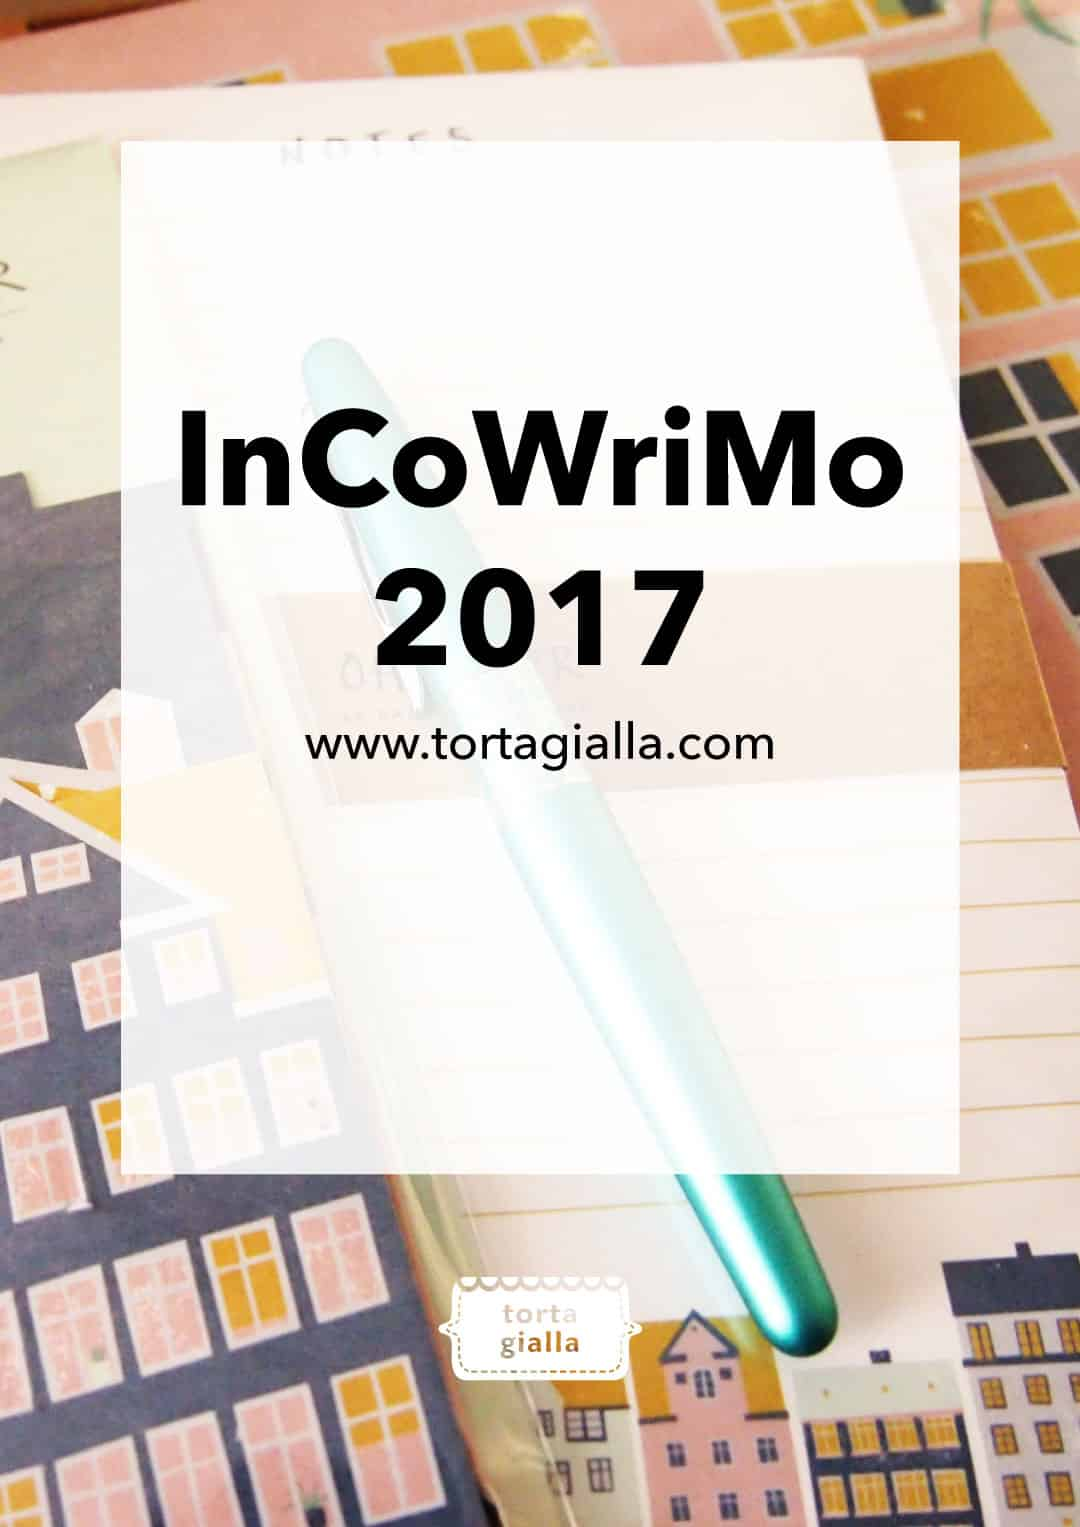 InCoWriMo 2017 - International Correspondence Writing Month 2017